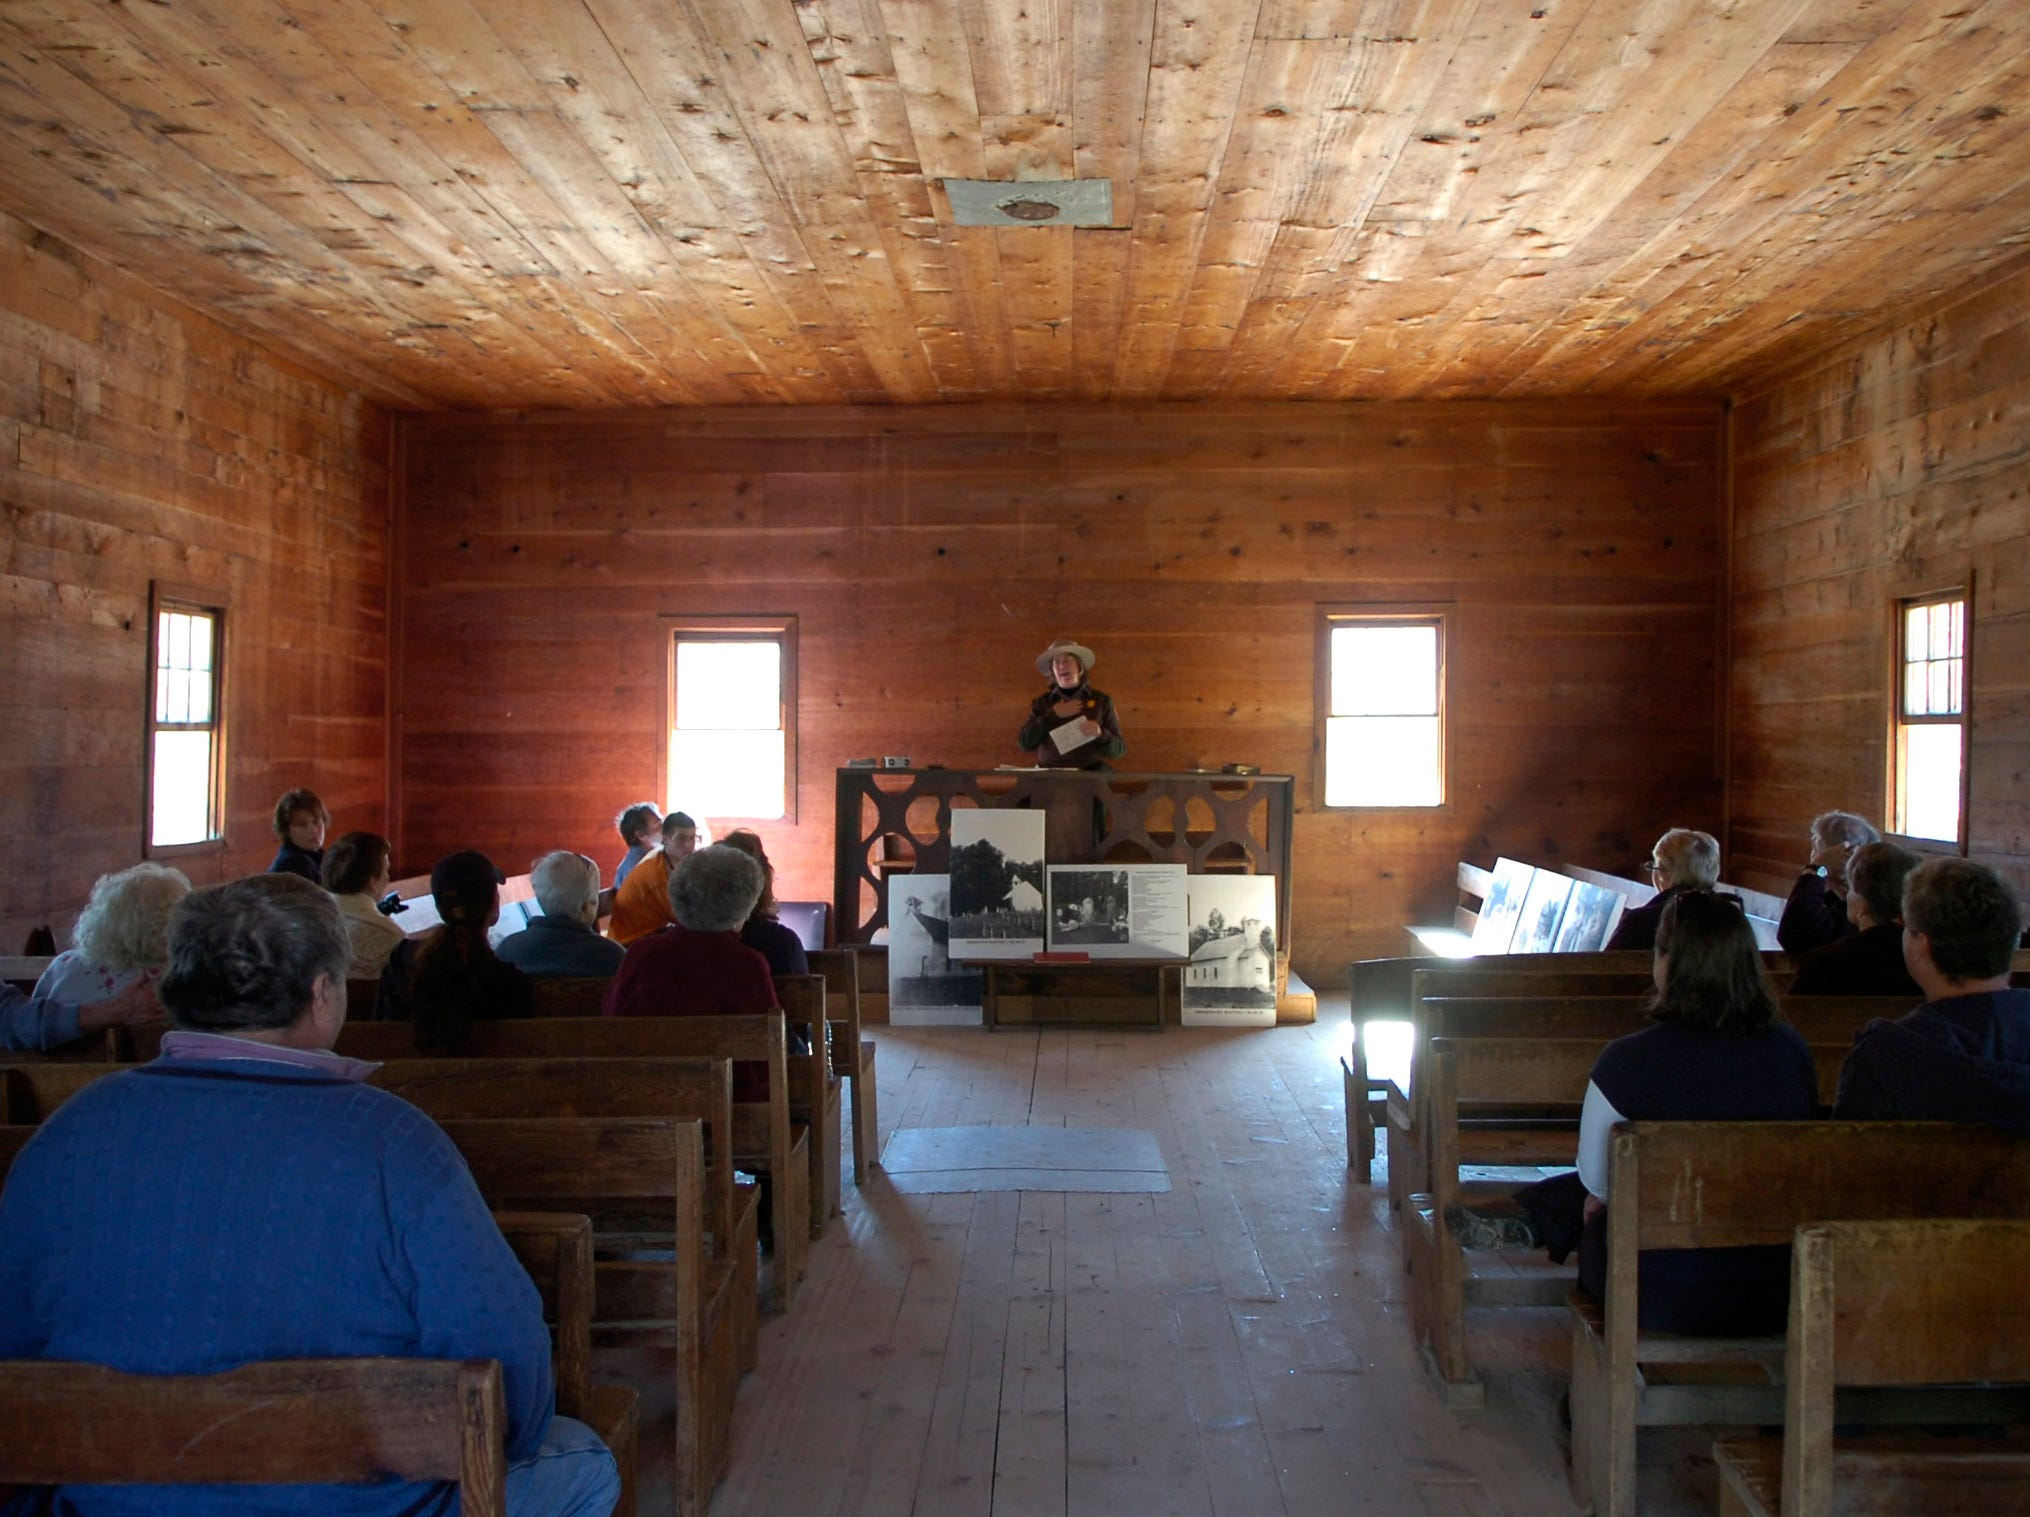 Park ranger Ann Schlichting gives a talk about the cemeteries that exist in Cades Cove at the Great Smoky Mountains National Park. The Tour was part of the Smoky Mountains Winter Heritage Festival.